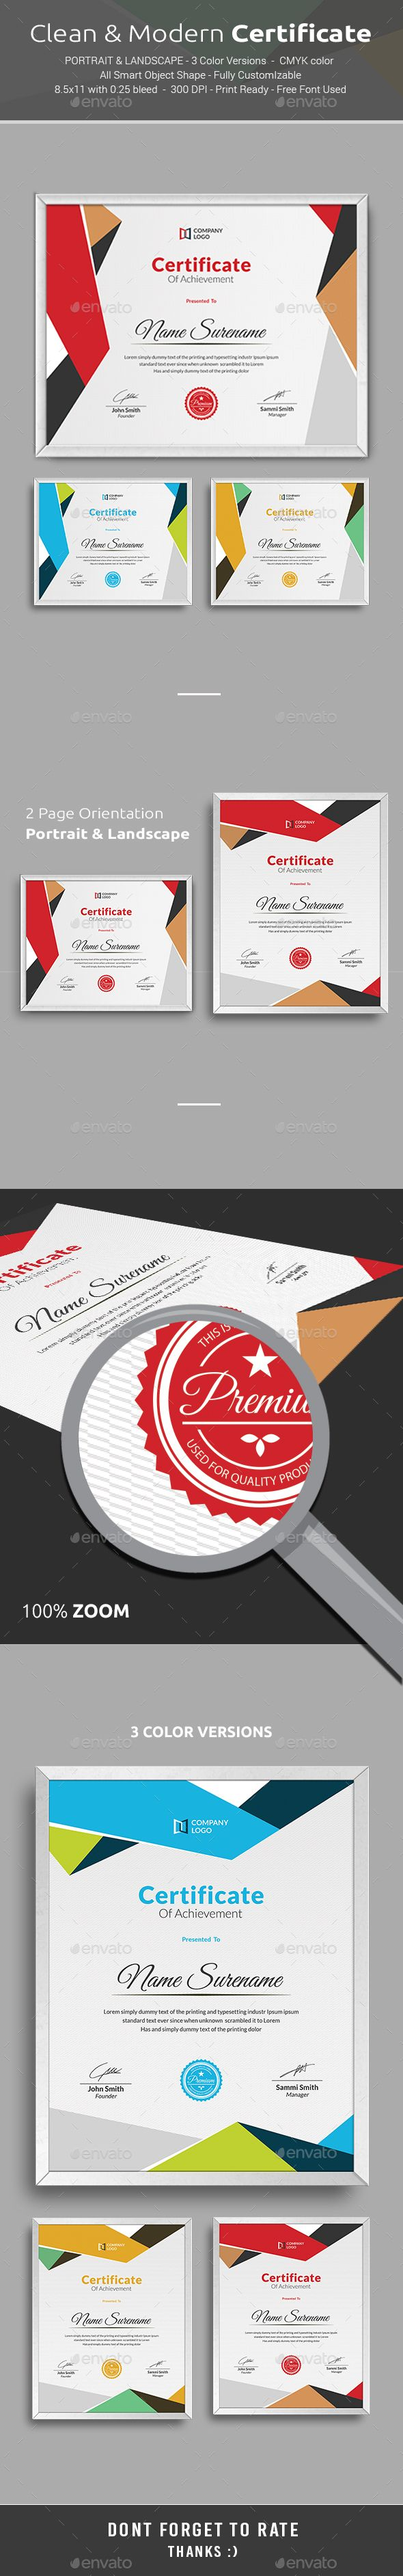 Certificate Template PSD. Download here: http://graphicriver.net/item/certificate/13757280?ref=ksioks